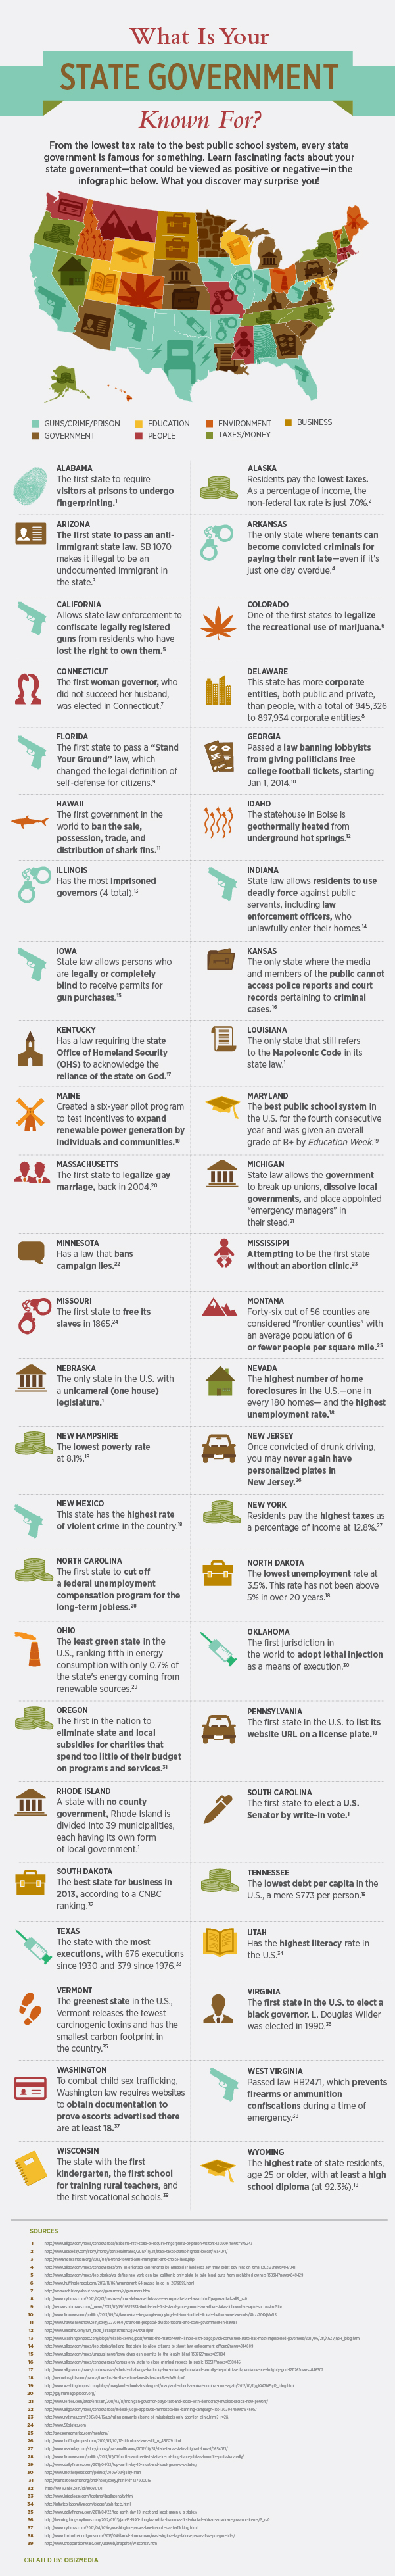 What Is Your State Government Known For #Infographic